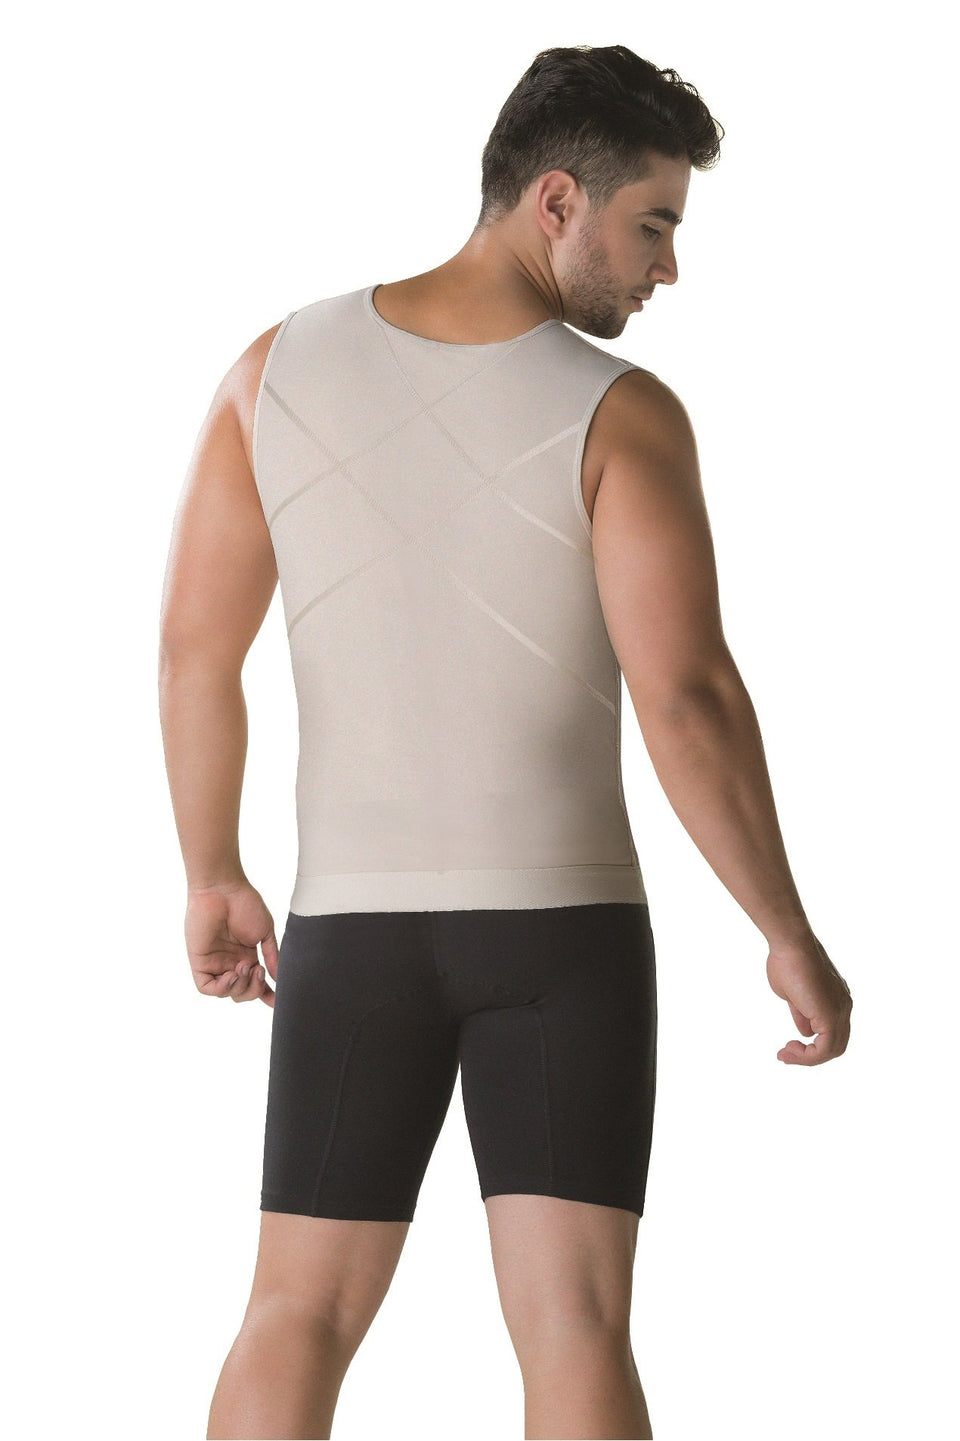 Perfect Shape Mens Slimming Body Shaper with Zipper